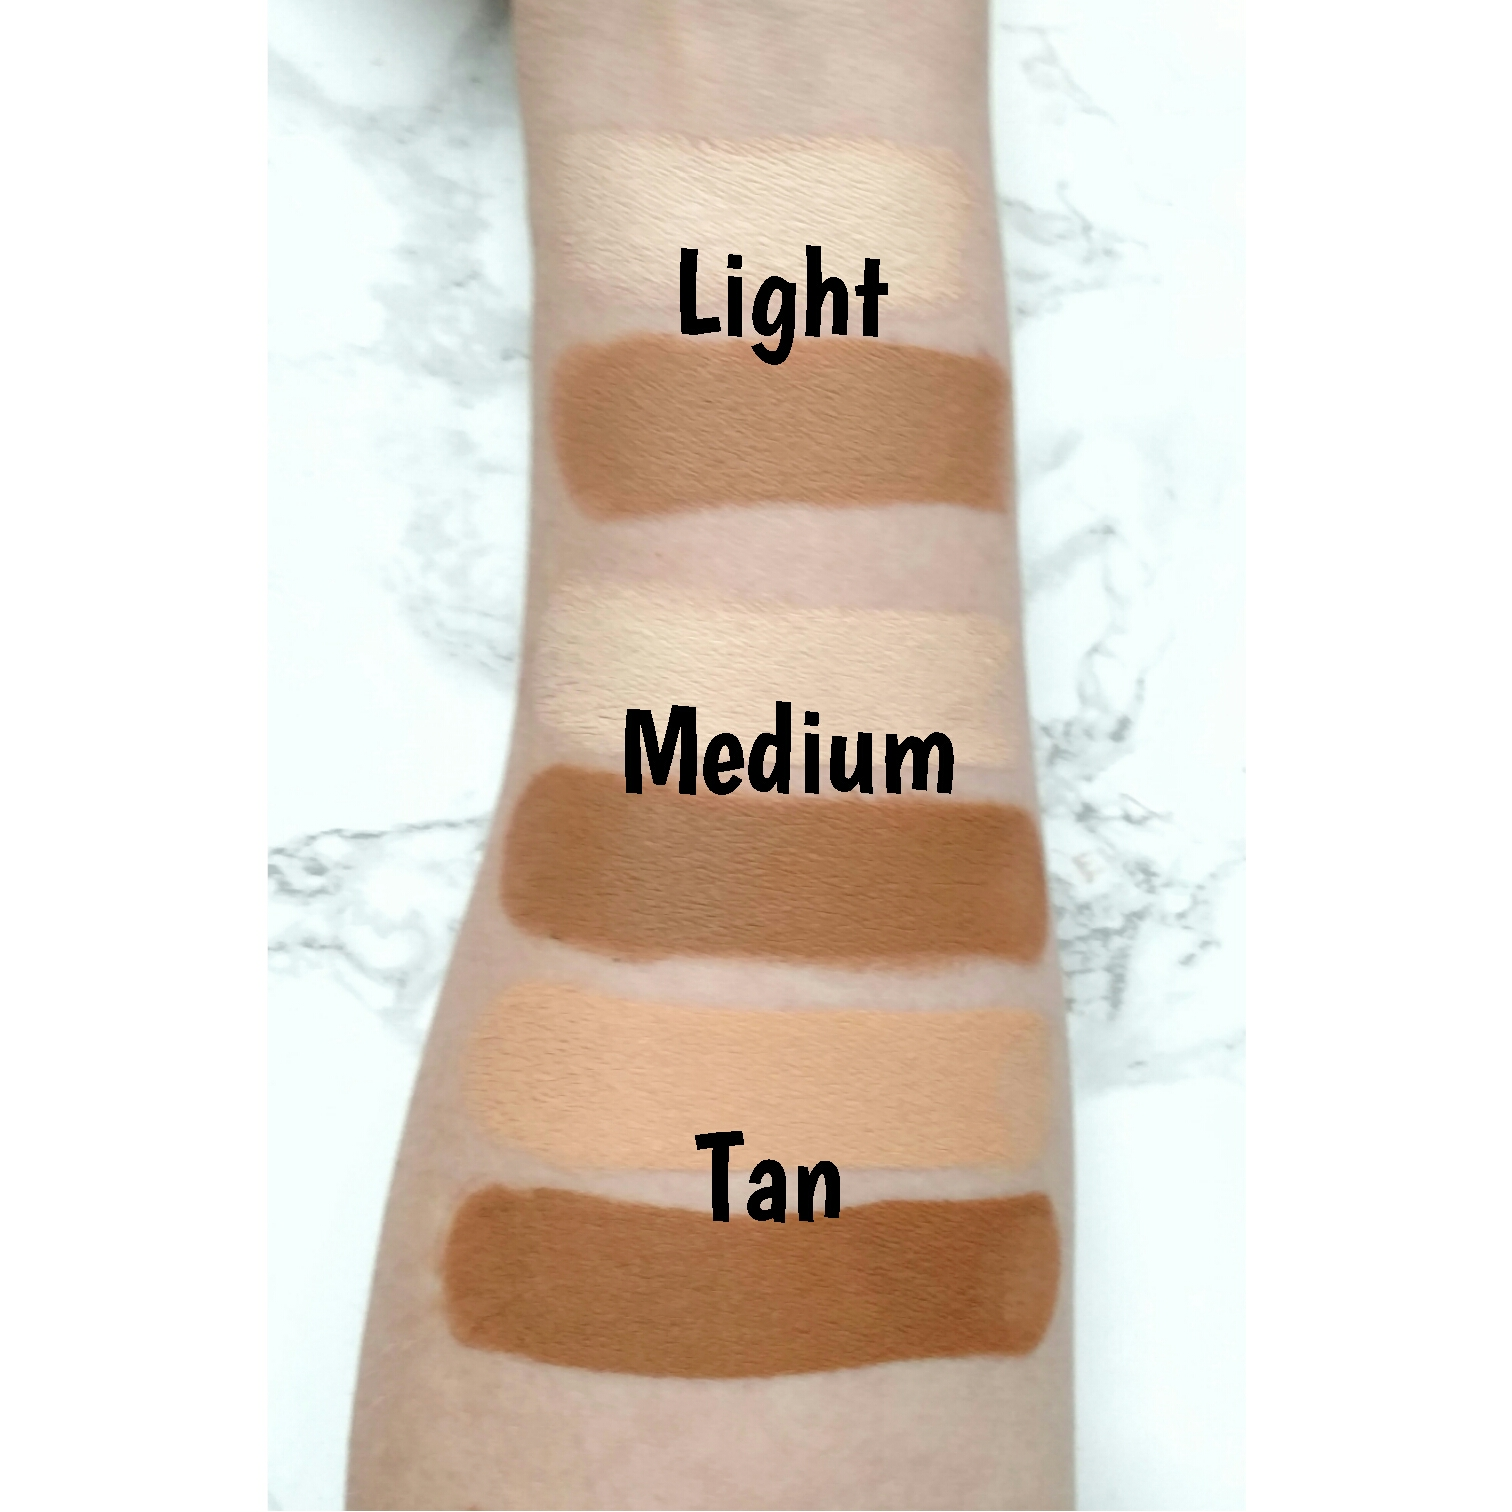 Pur Cosmetics Cameo Contour Stick Review | The Budget Beauty Blog